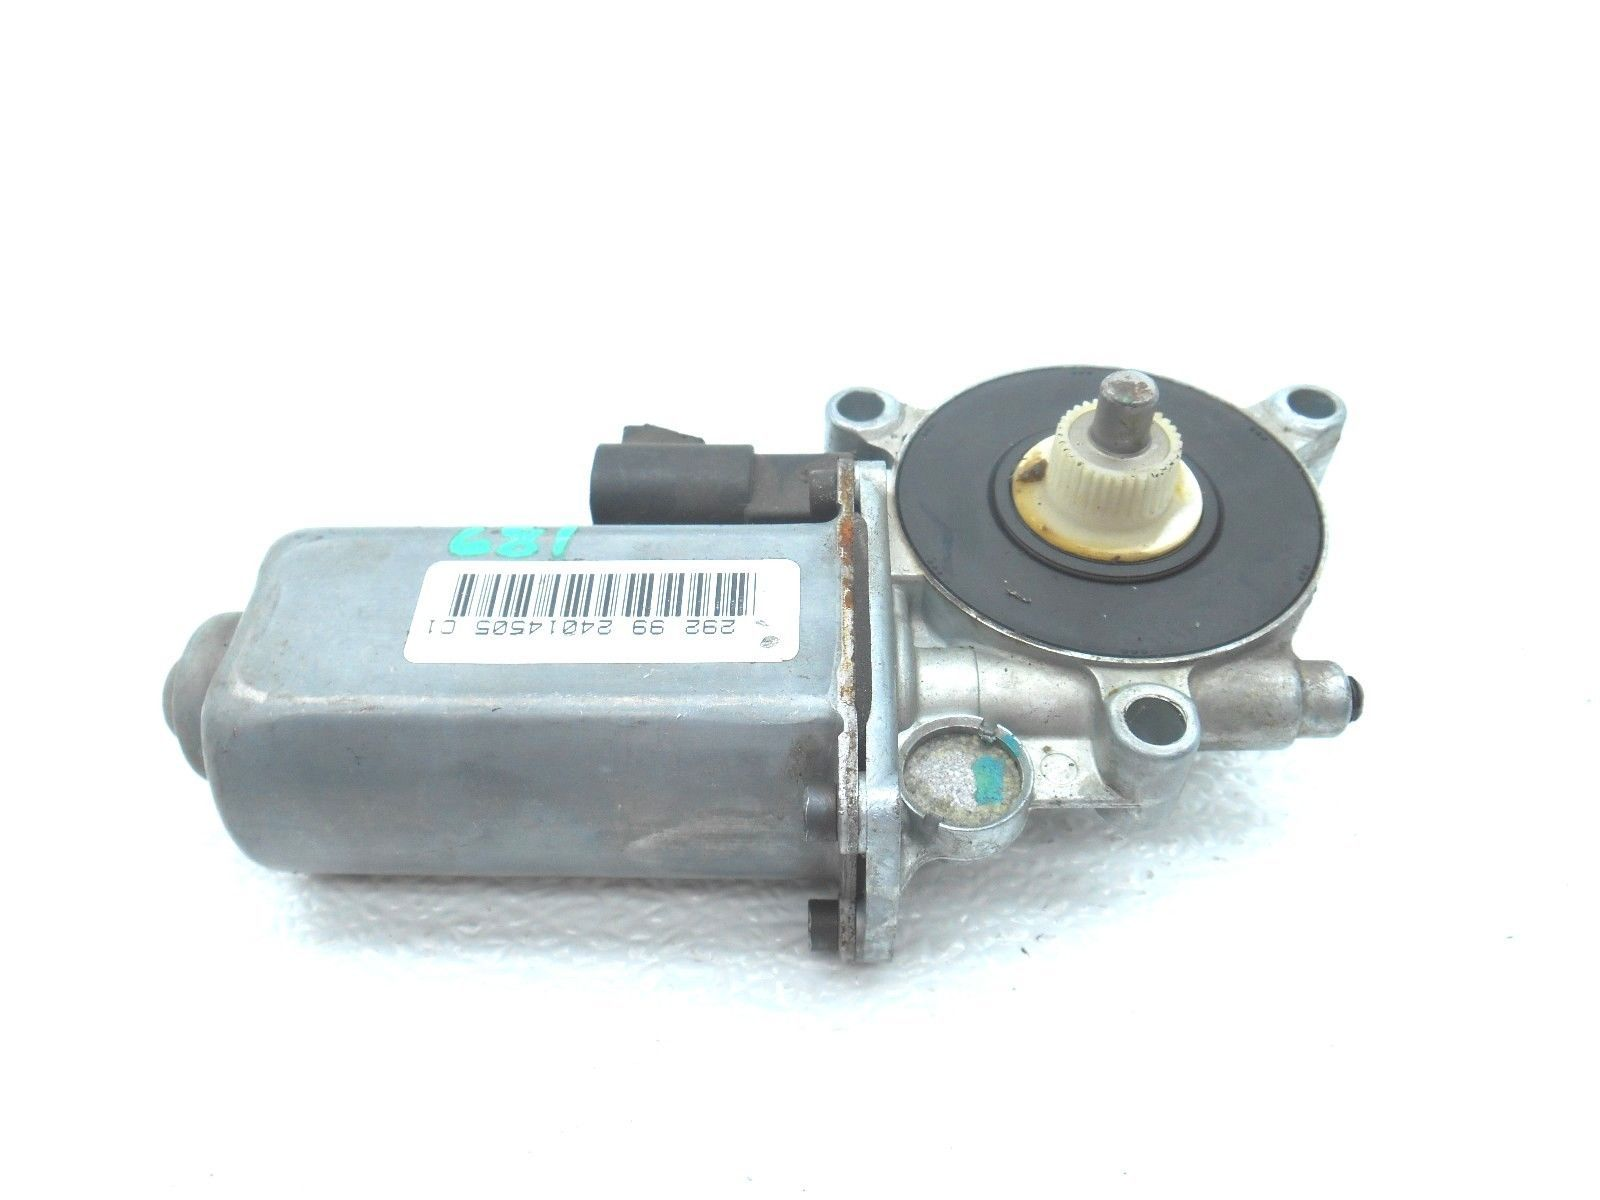 Pontiac grand am lesabre alero aurora power window motor for 1999 pontiac grand am window regulator